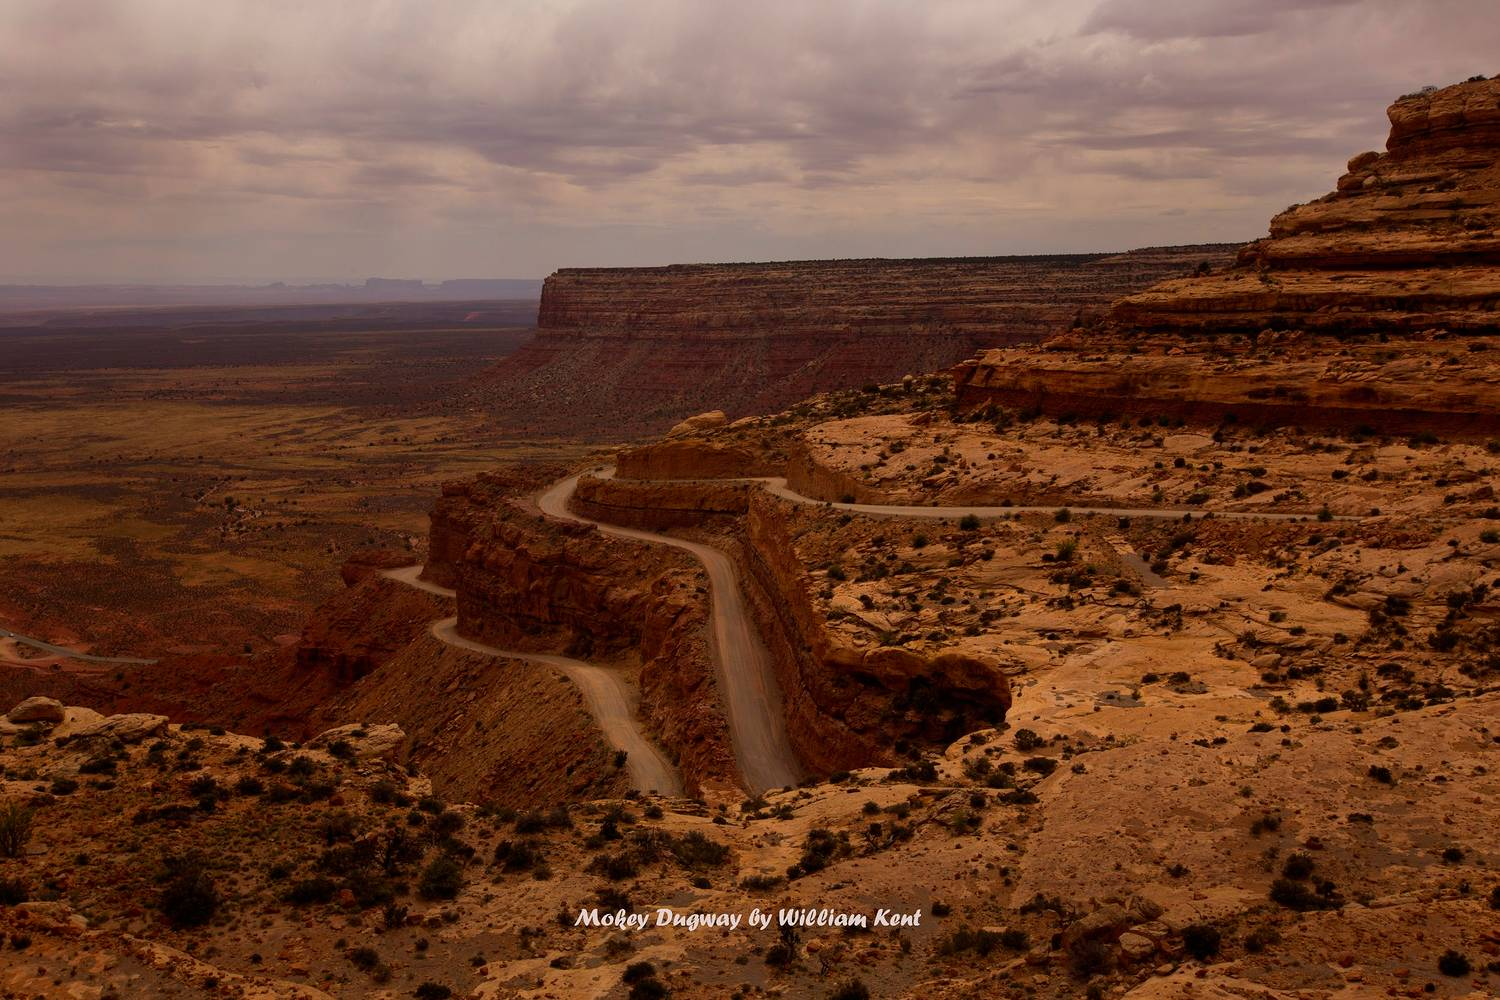 Mokey Dugway by William Kent